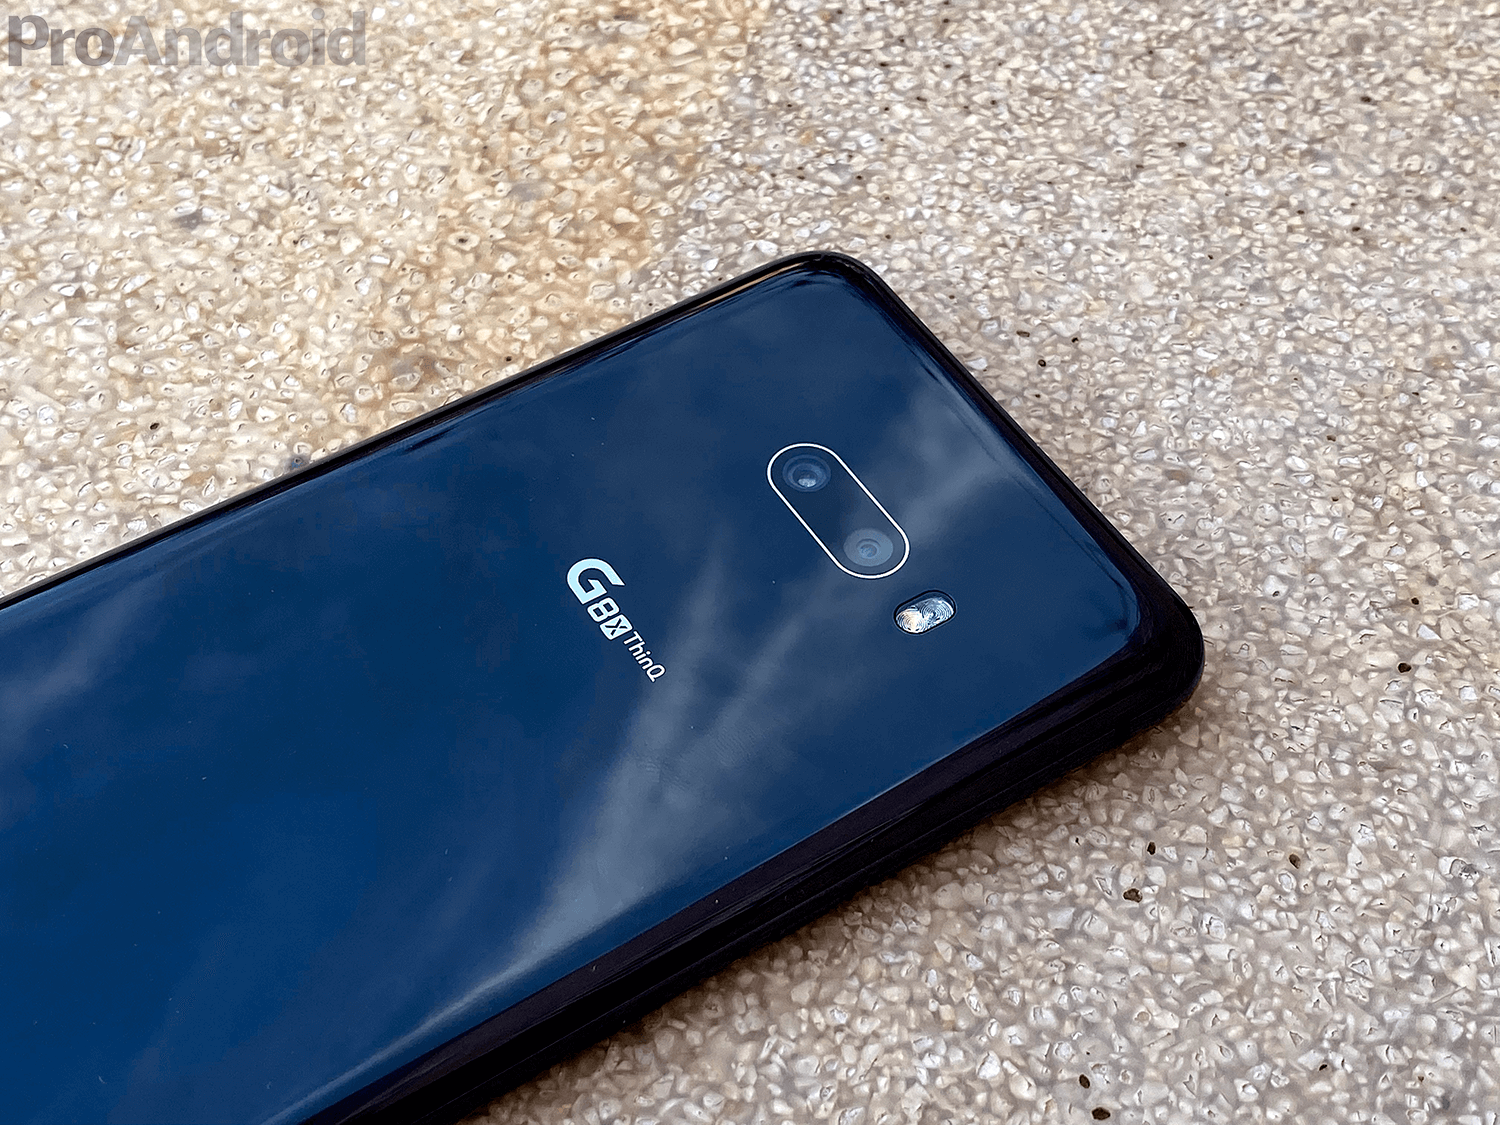 LG G8x ThinQ review, reviews with features and opinions 6